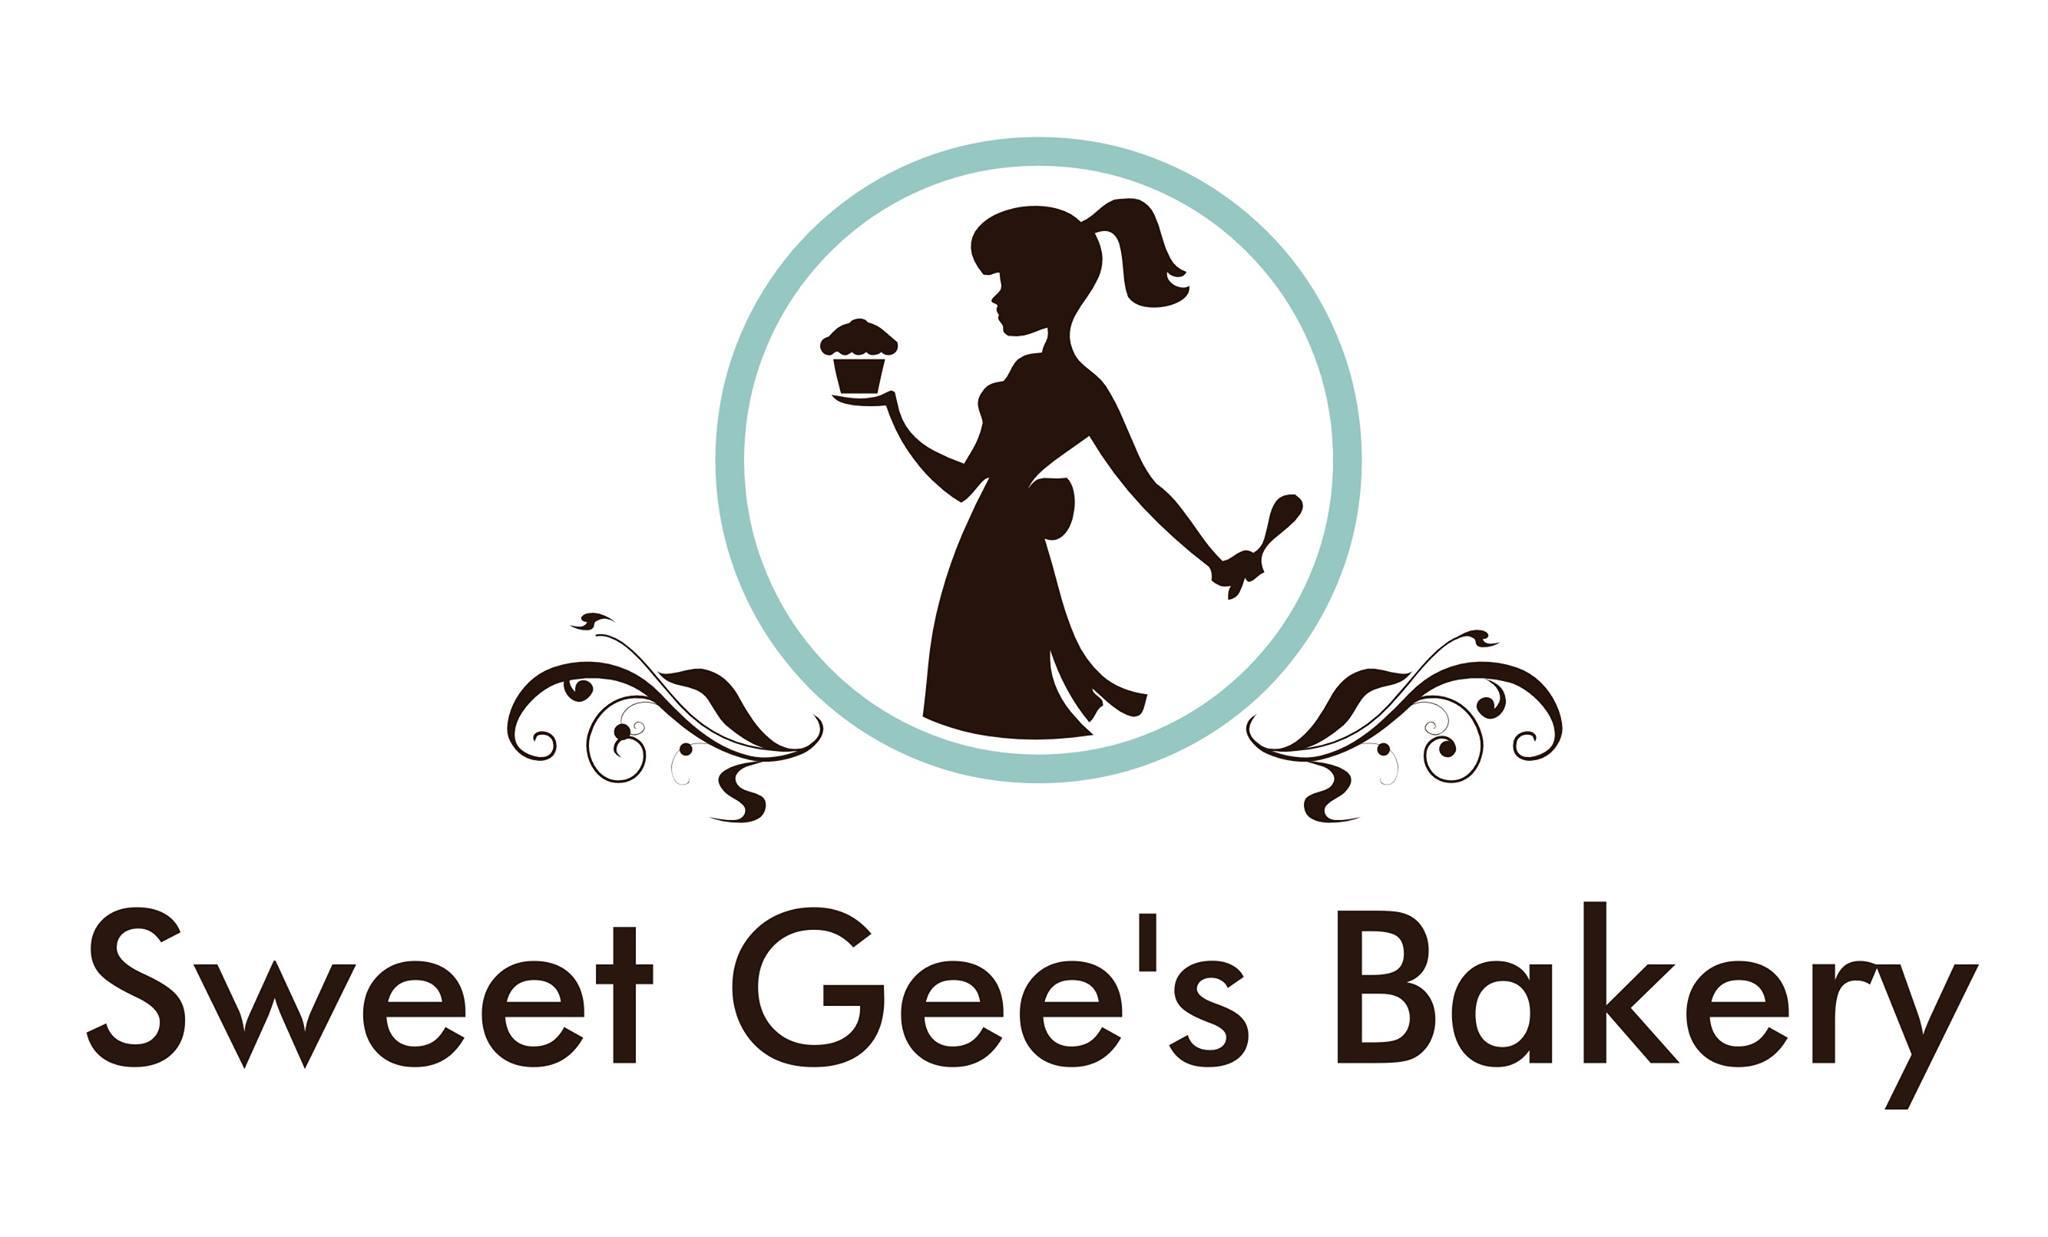 Sweet Gee's Bakery